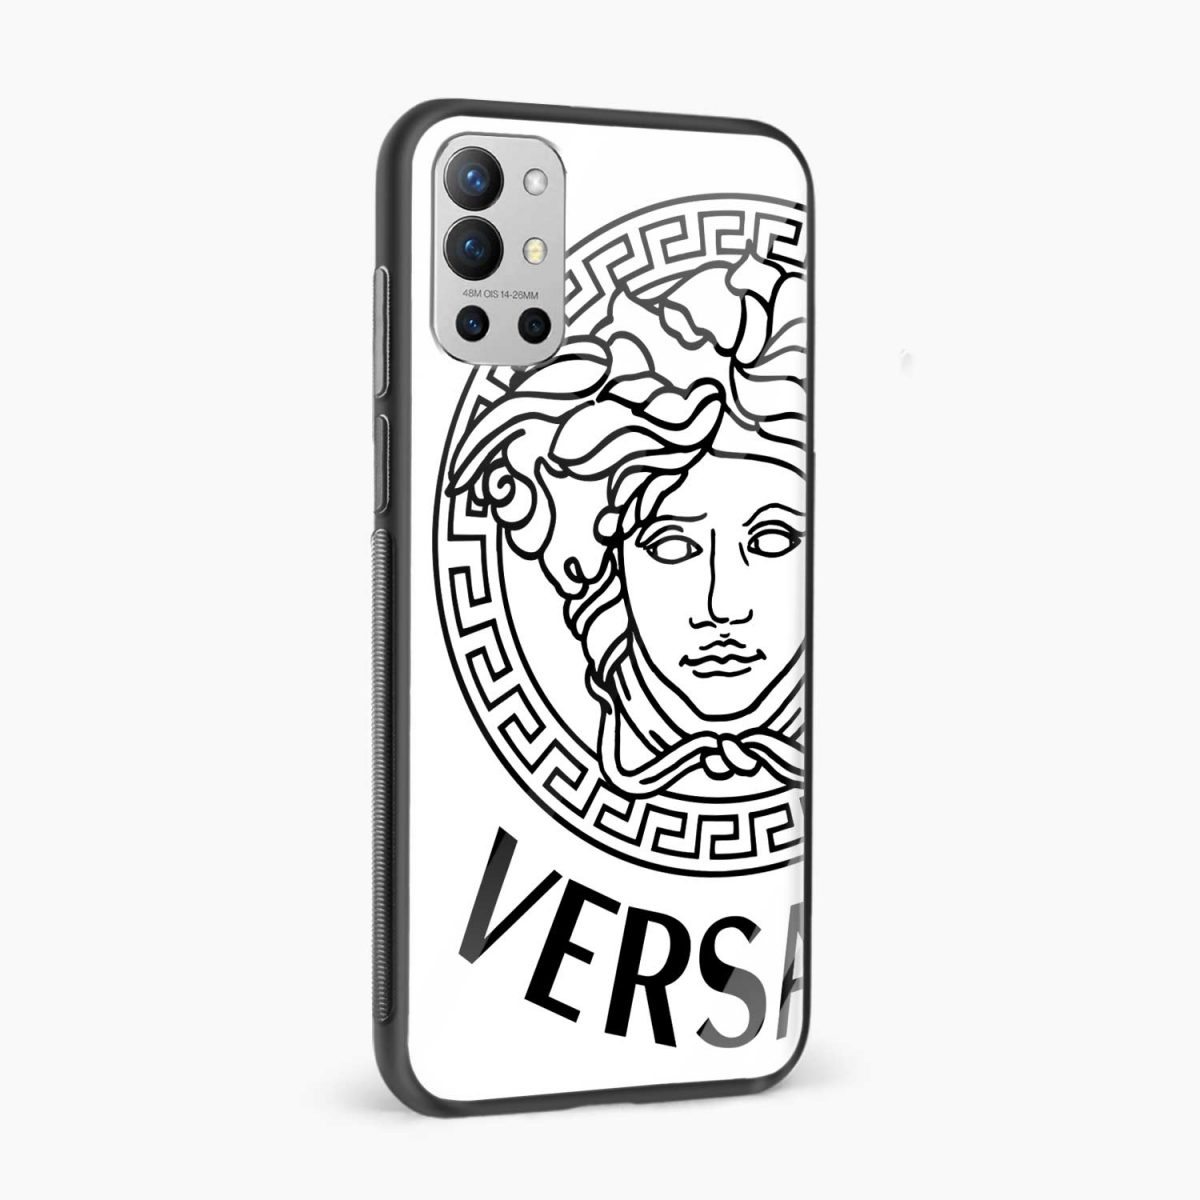 versace black white side view oneplus 9r back cover